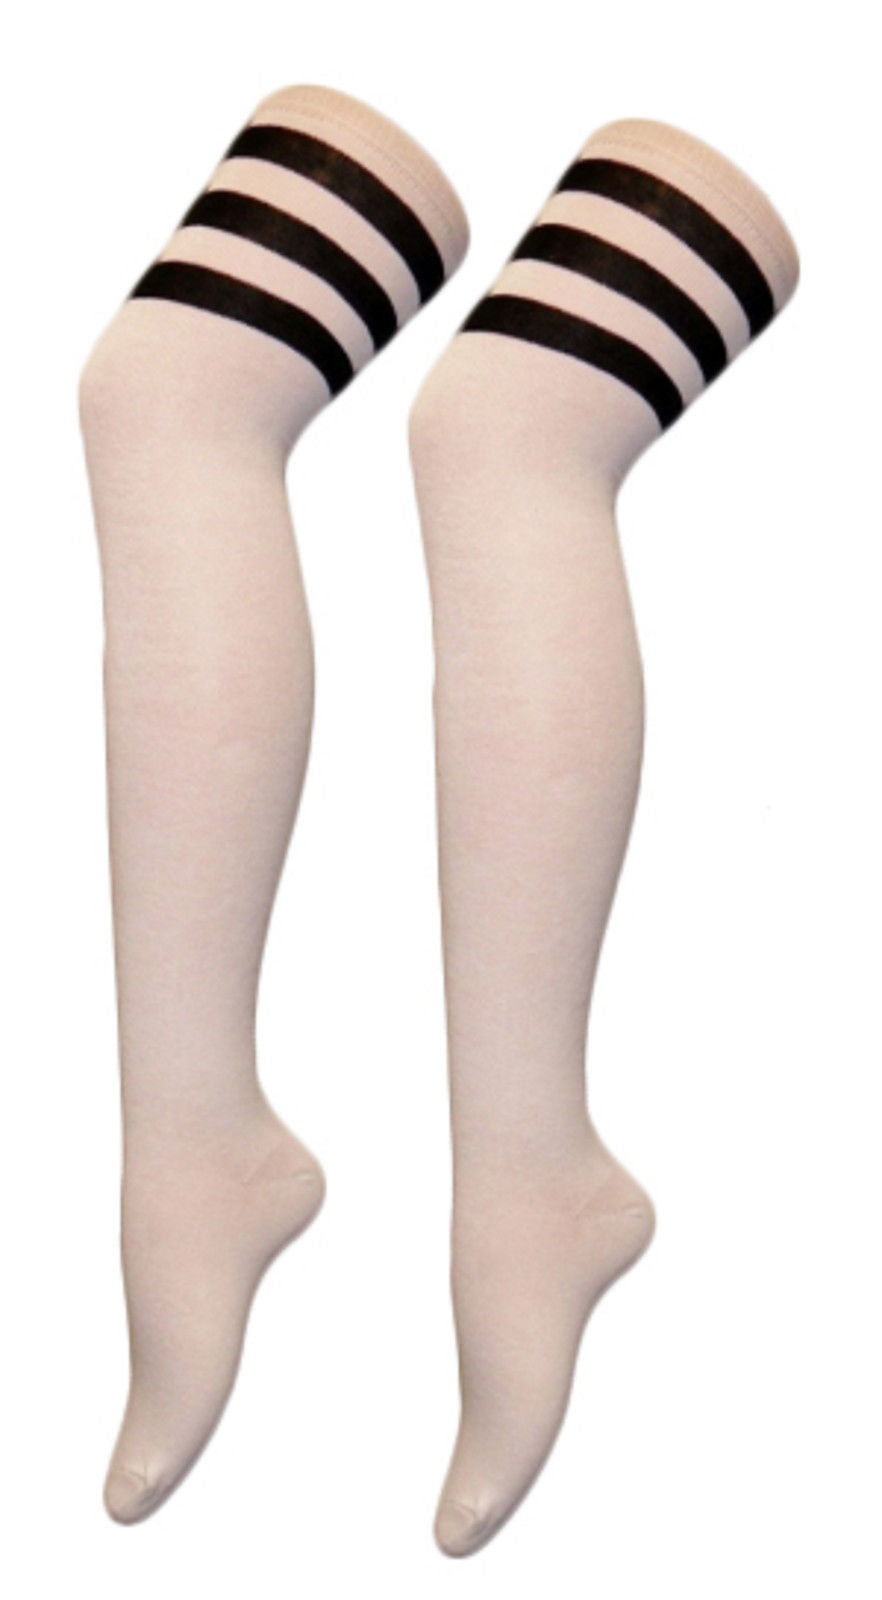 2fed104fb ... LADIES AND MENS OVER THE KNEE THIGH HIGH 118 - 118 REFEREE SOCKS FANCY  DRESS ...